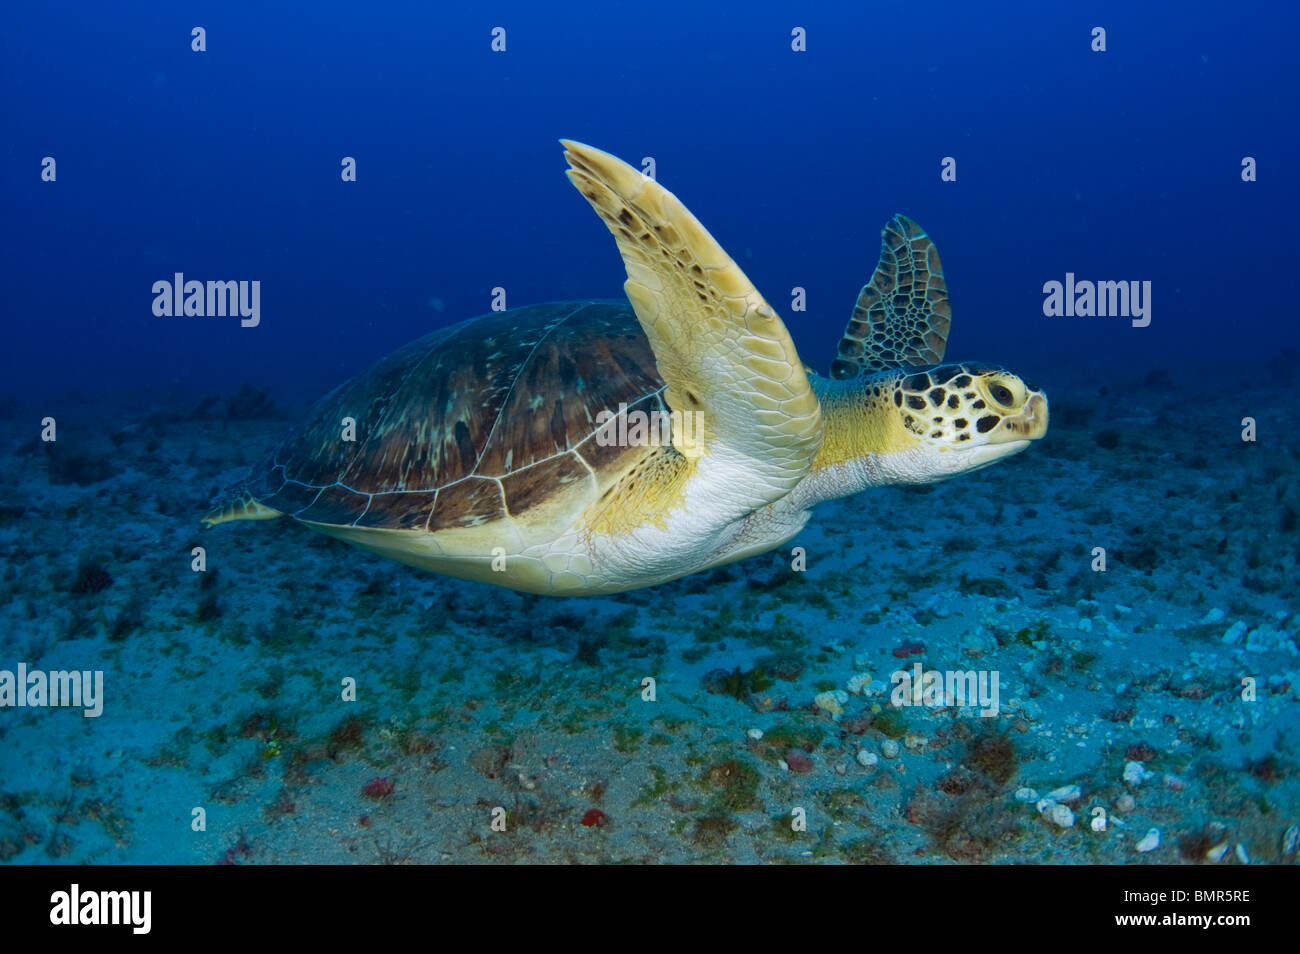 Female Green Sea Turtle (Chelonia mydas) feeding on algae underwater in Juno Beach, FL. - Stock Image